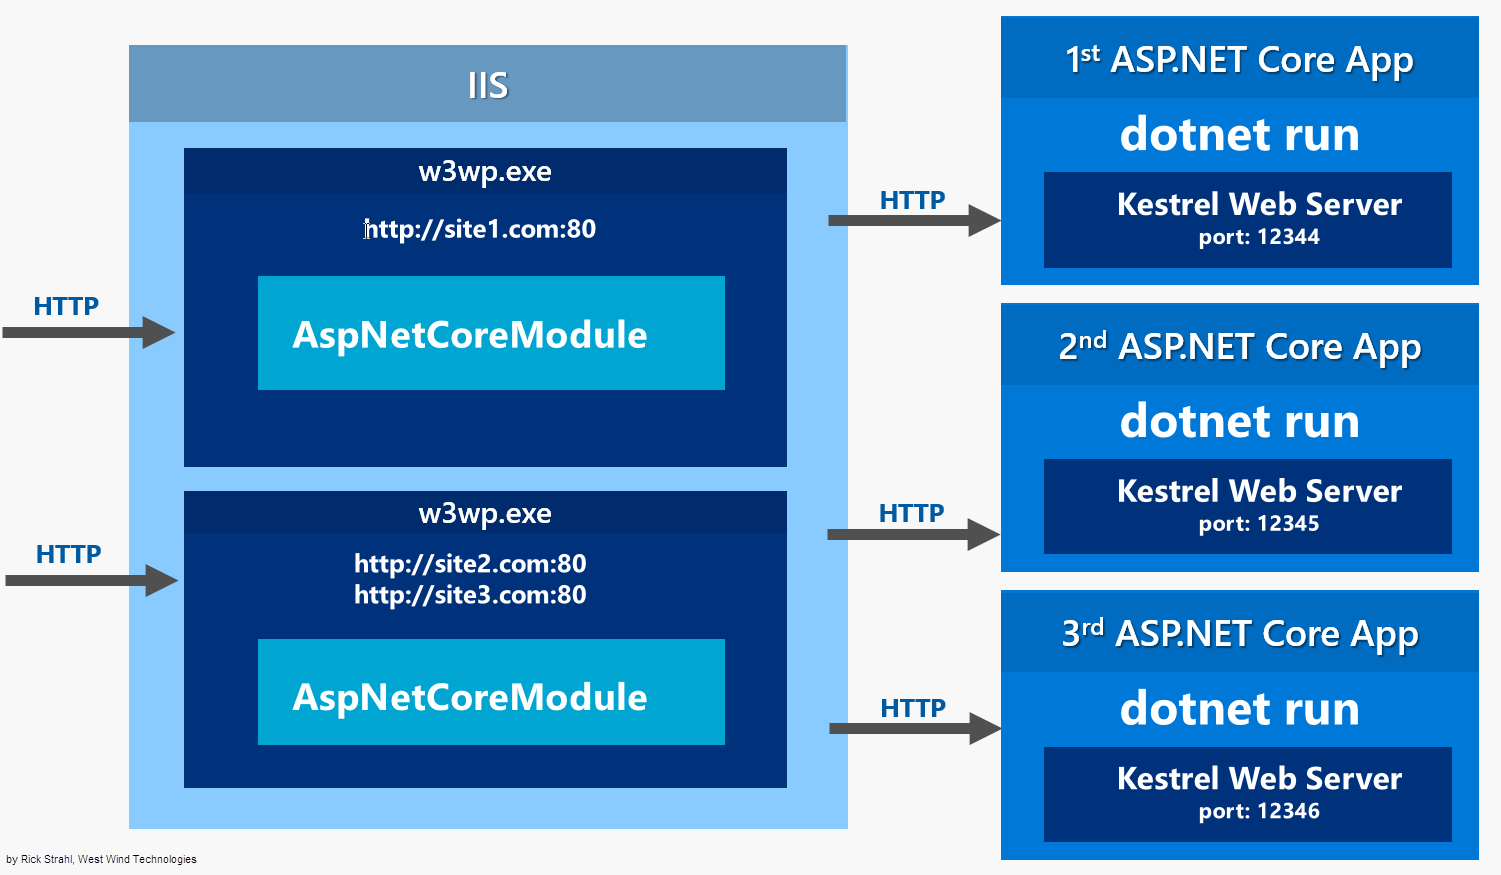 More on ASP NET Core Running under IIS - Rick Strahl's Web Log